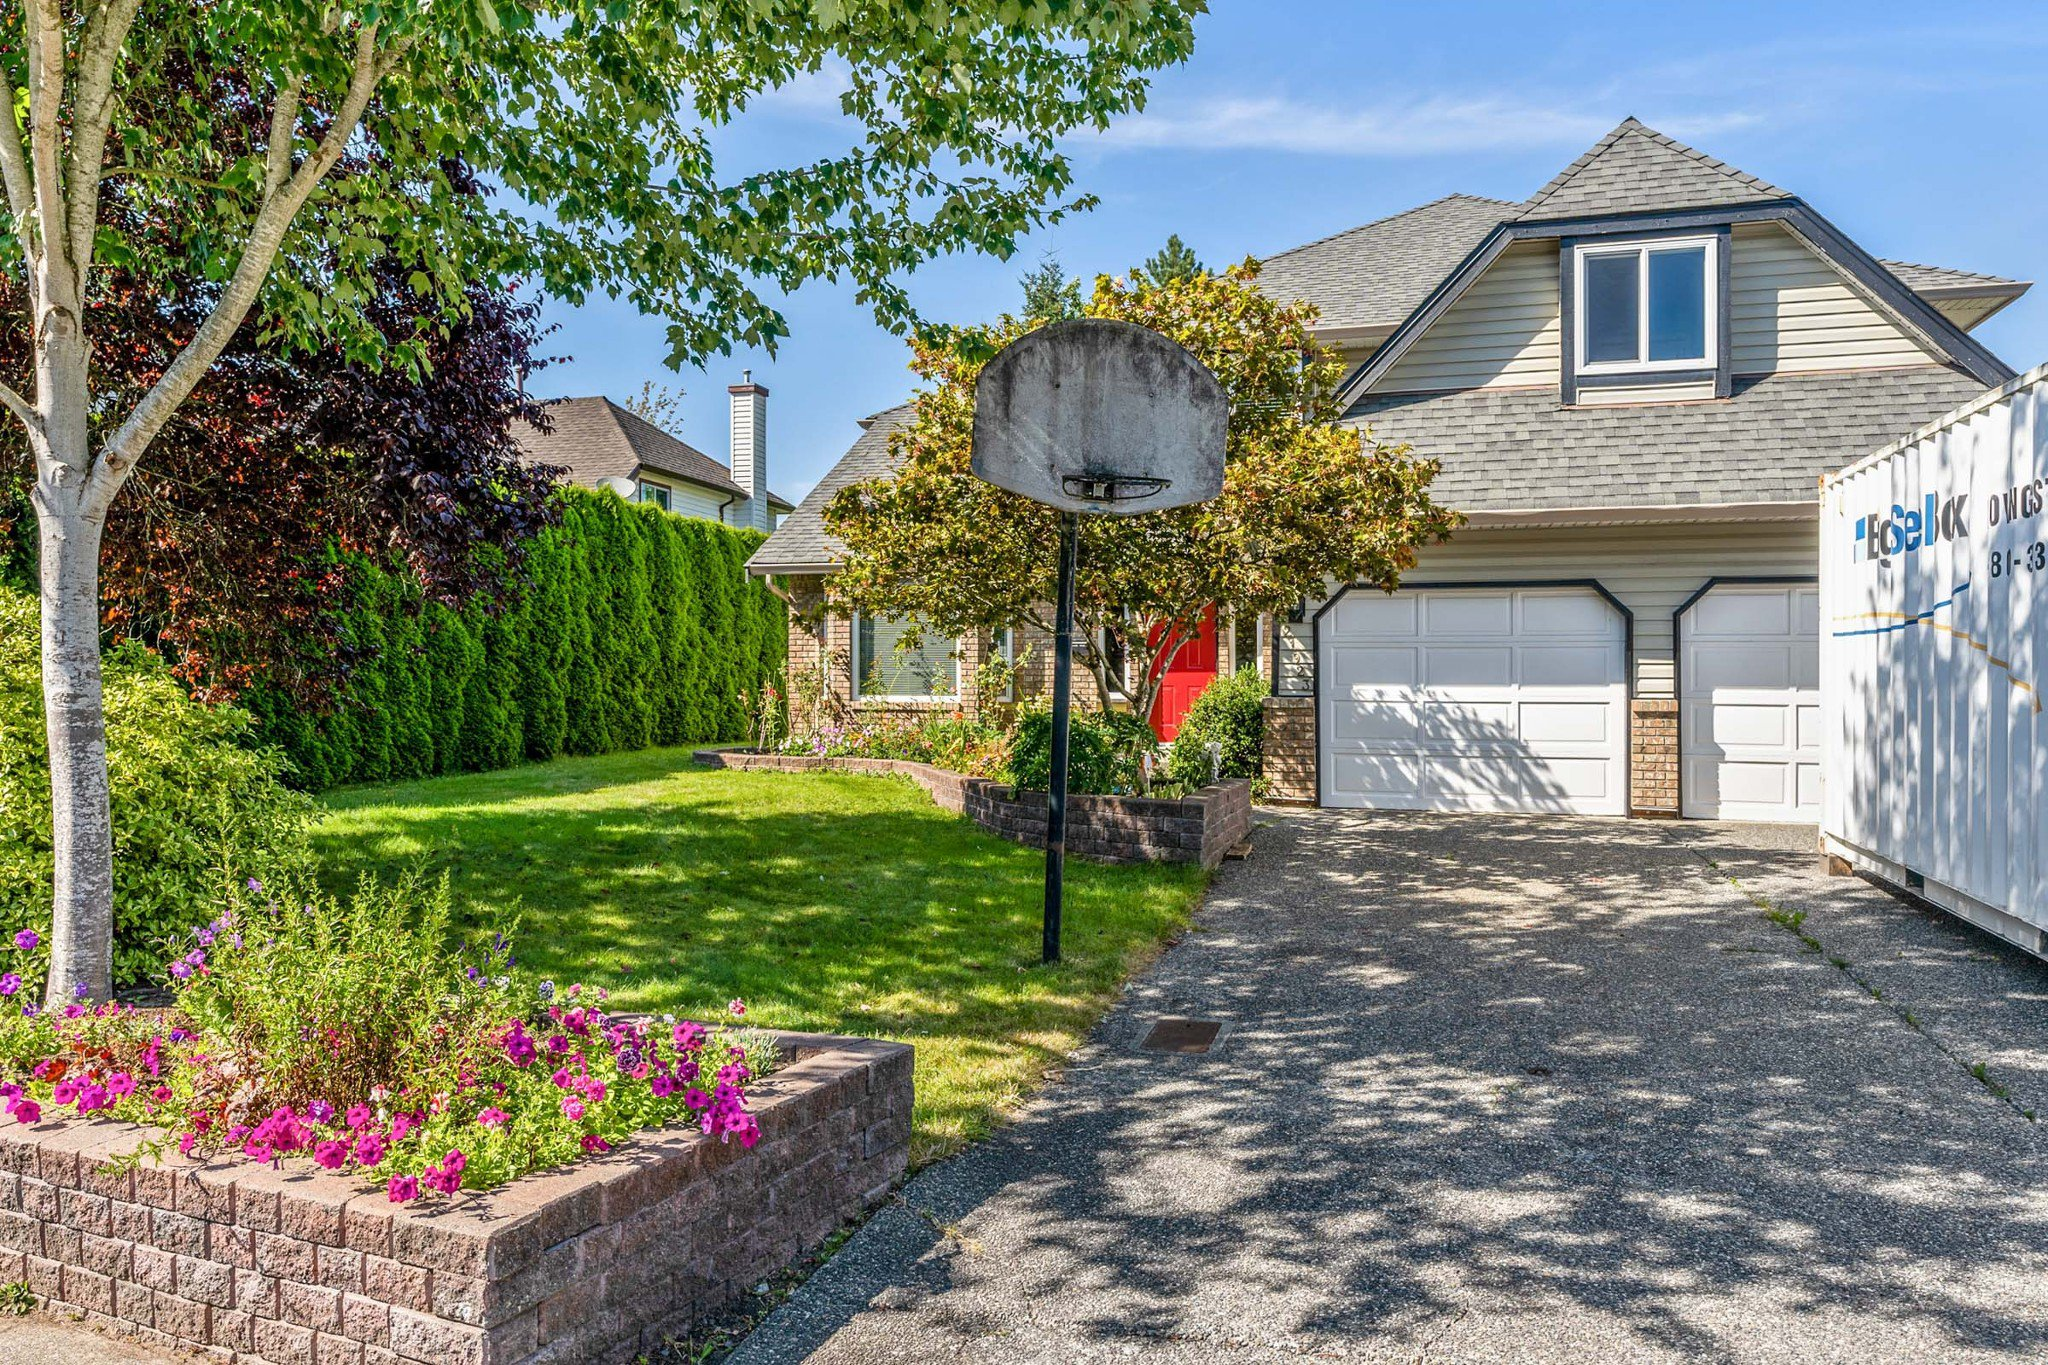 Main Photo: 21923 44A Avenue in Langley: Murrayville House for sale : MLS®# R2487713